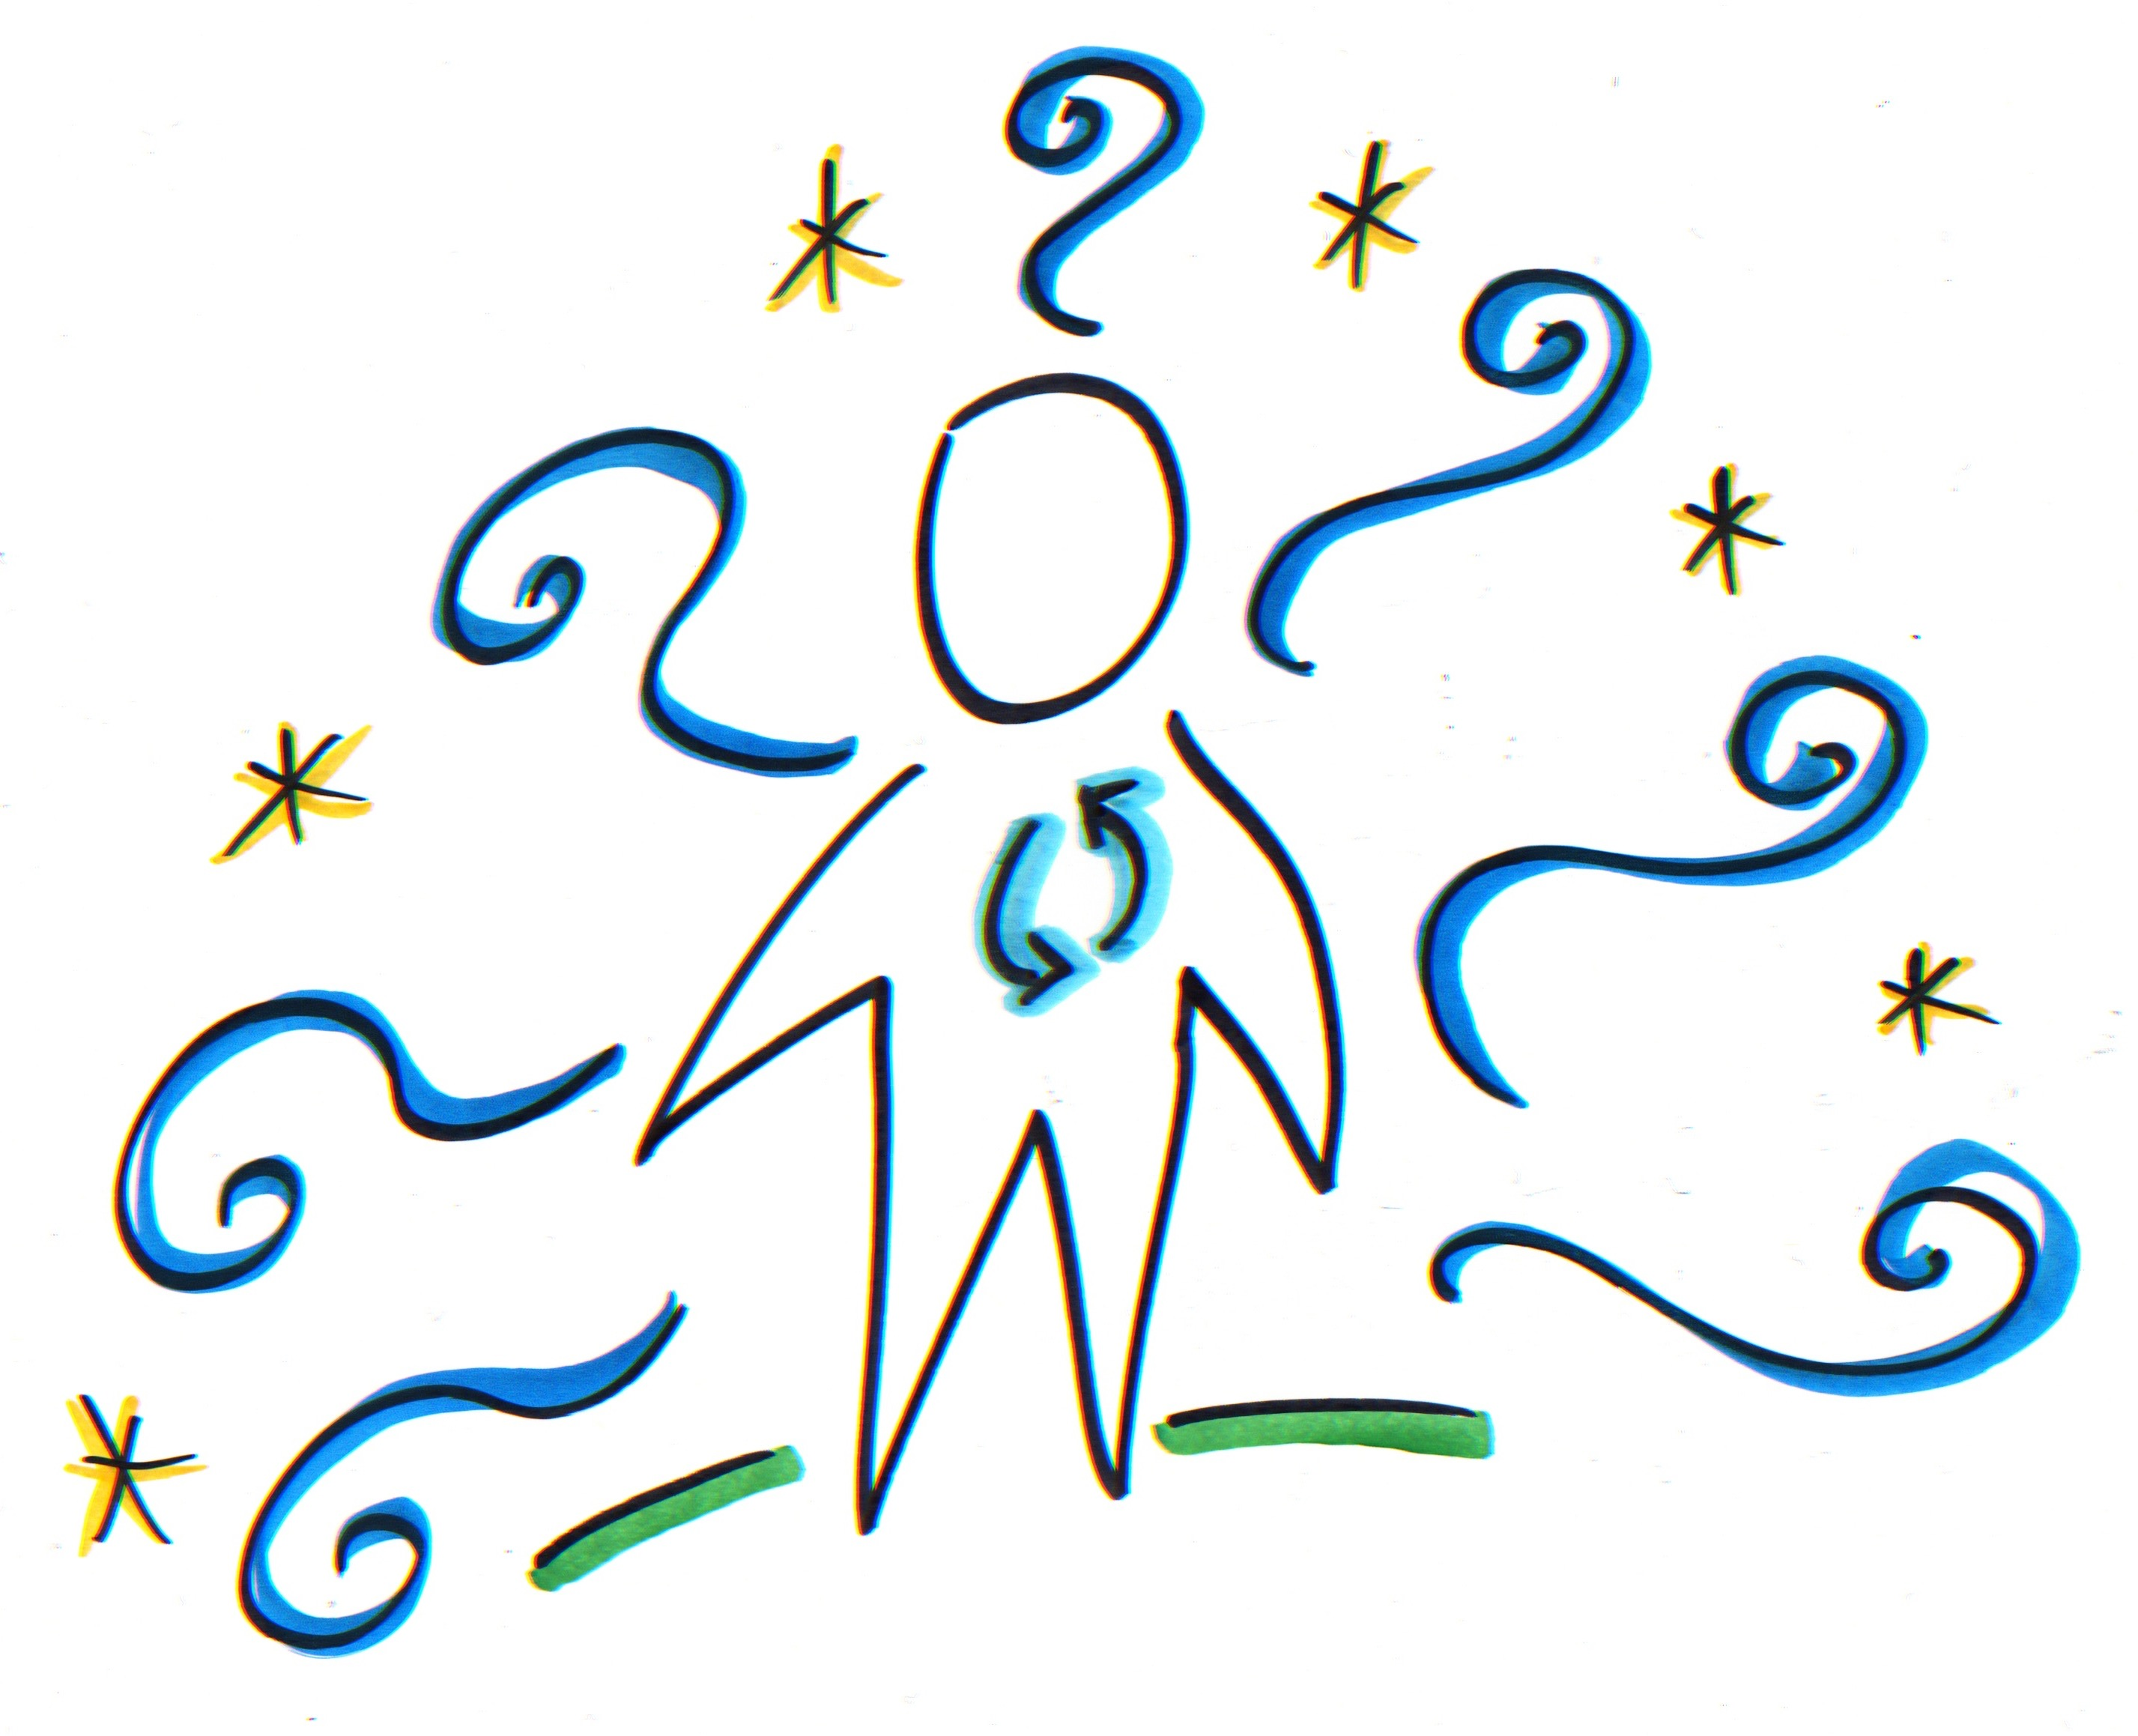 Mindful clipart.